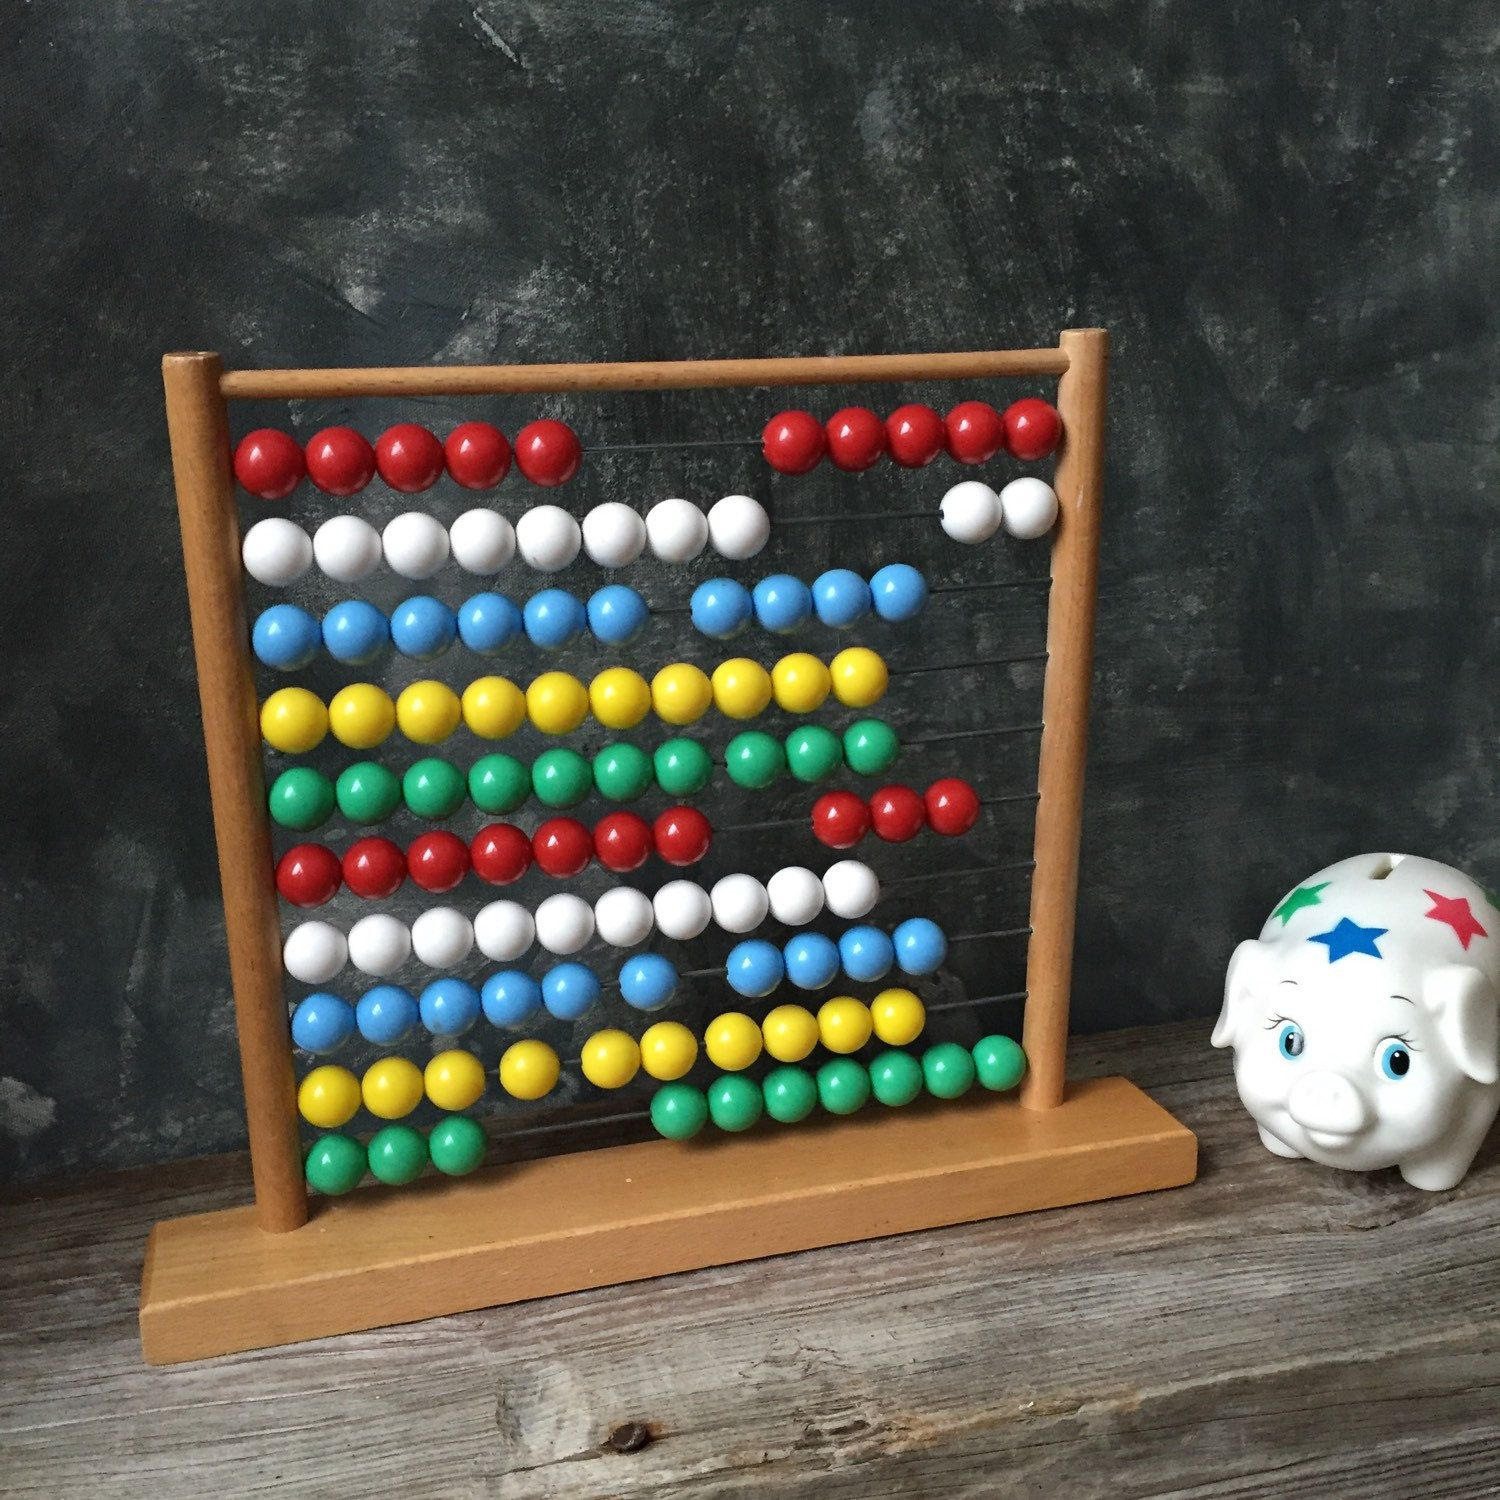 Vintage Abacus Classic Wooden Counting Toy, Wooden Abacus With Plastic